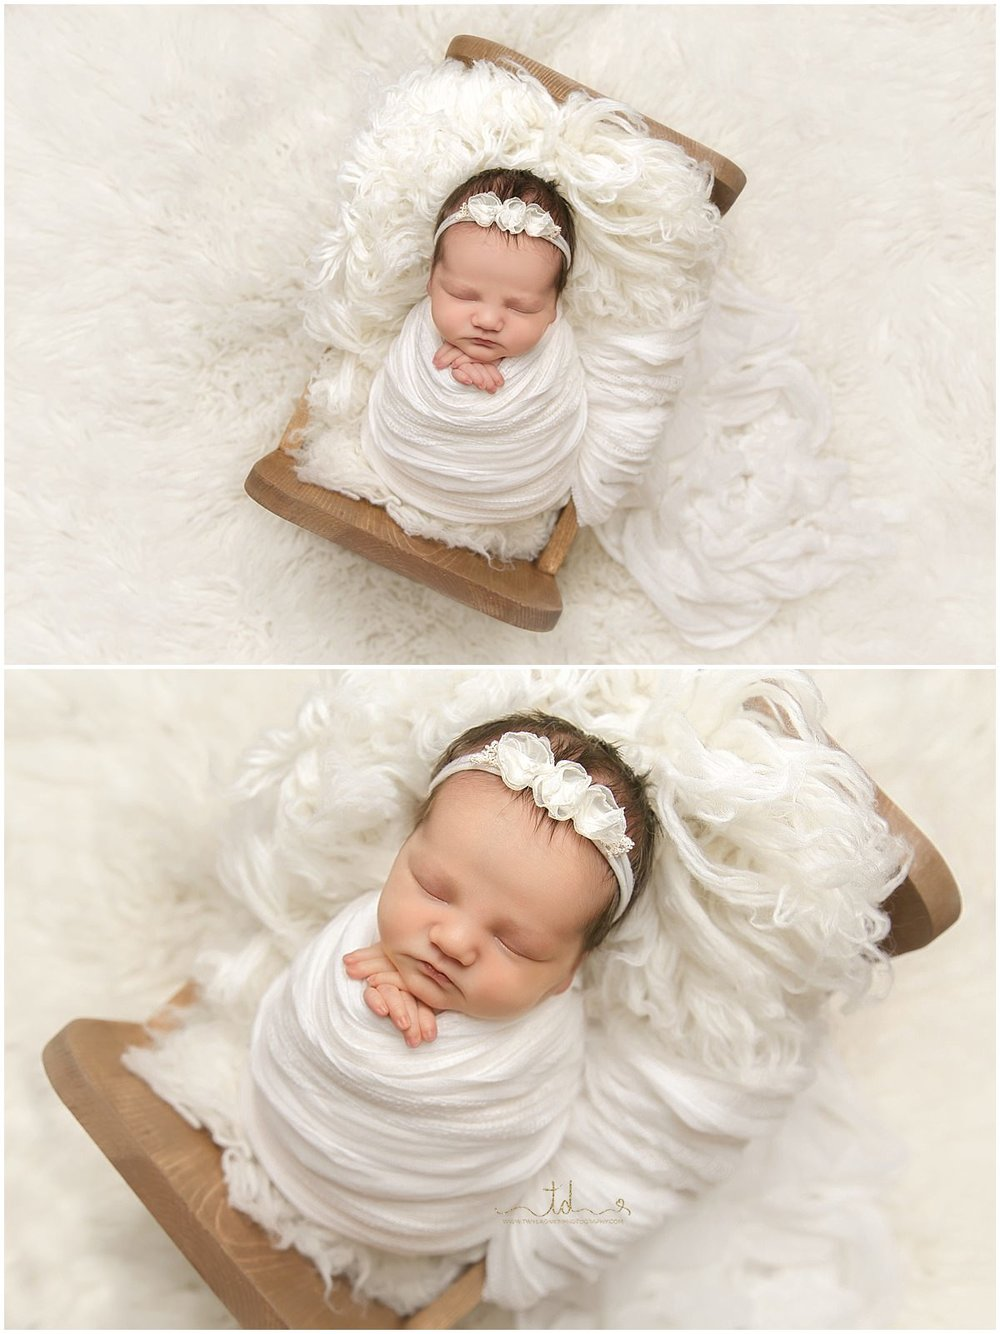 Utah Baby Photographer | Utah Newborn Photographer | Swaddled Prop Posing | #TwylaDawnPhotography